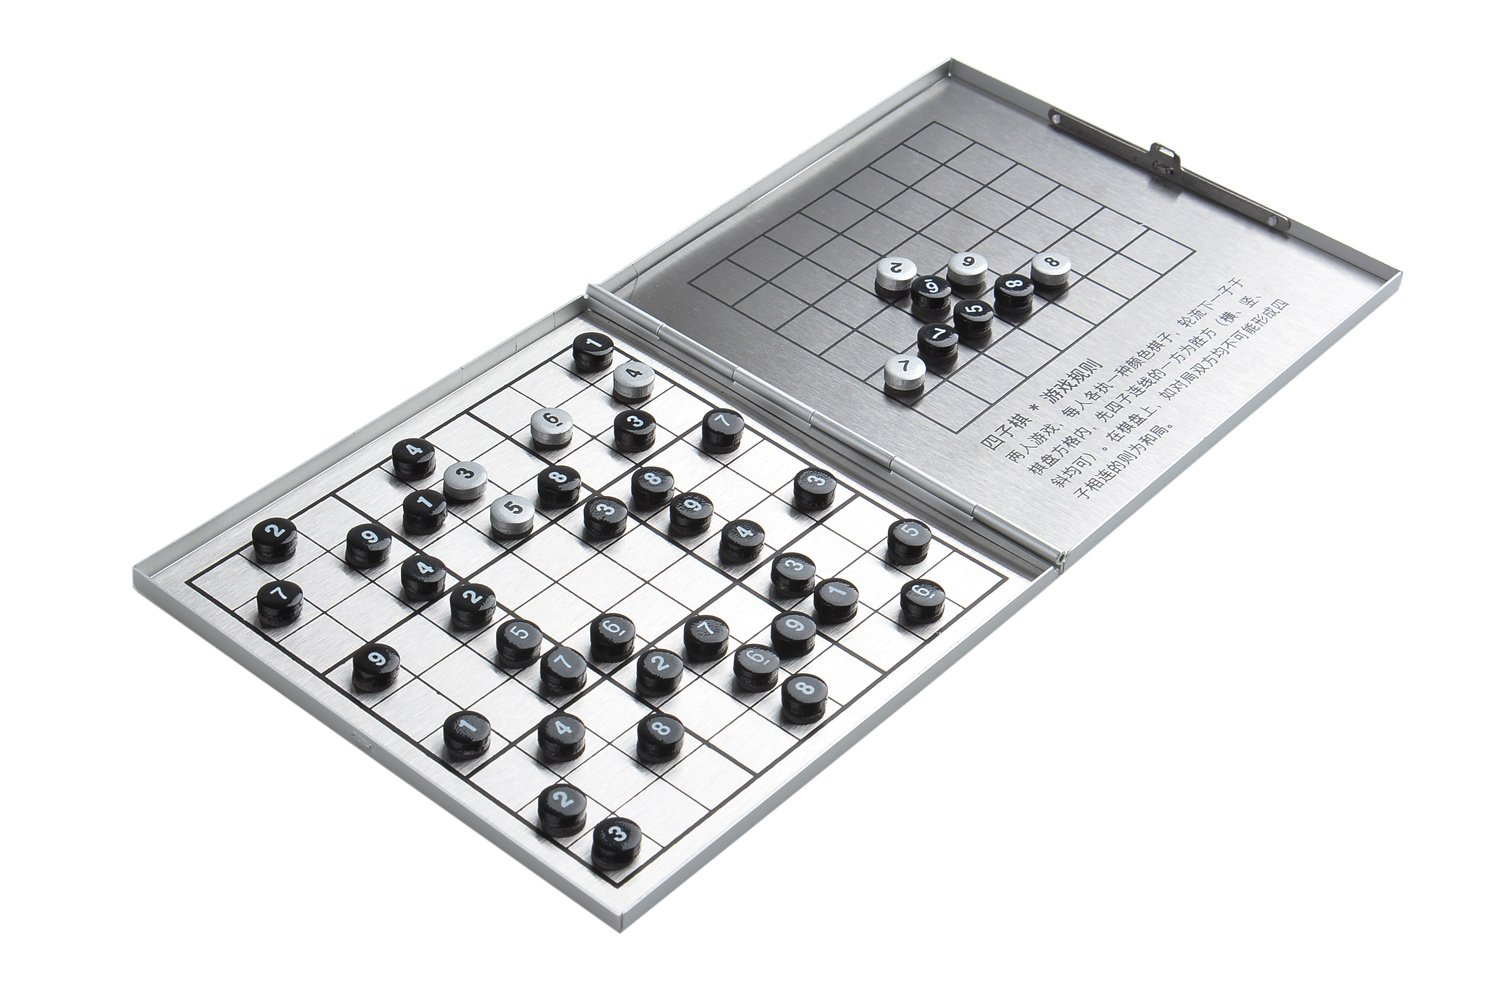 """Azerus Alu Line: Aluminum Leather Box """"Game set 3-in-1"""": Sudoku, Solitaire (Peg Solitaire or Sailor's Solitaire), Connect Four - with magnetic game pieces, game board 4.13"""" x 4.13"""" x 0.28"""" (10,5cm x 10,5cm x 0,7cm), Mod. XY006P3 (US)"""